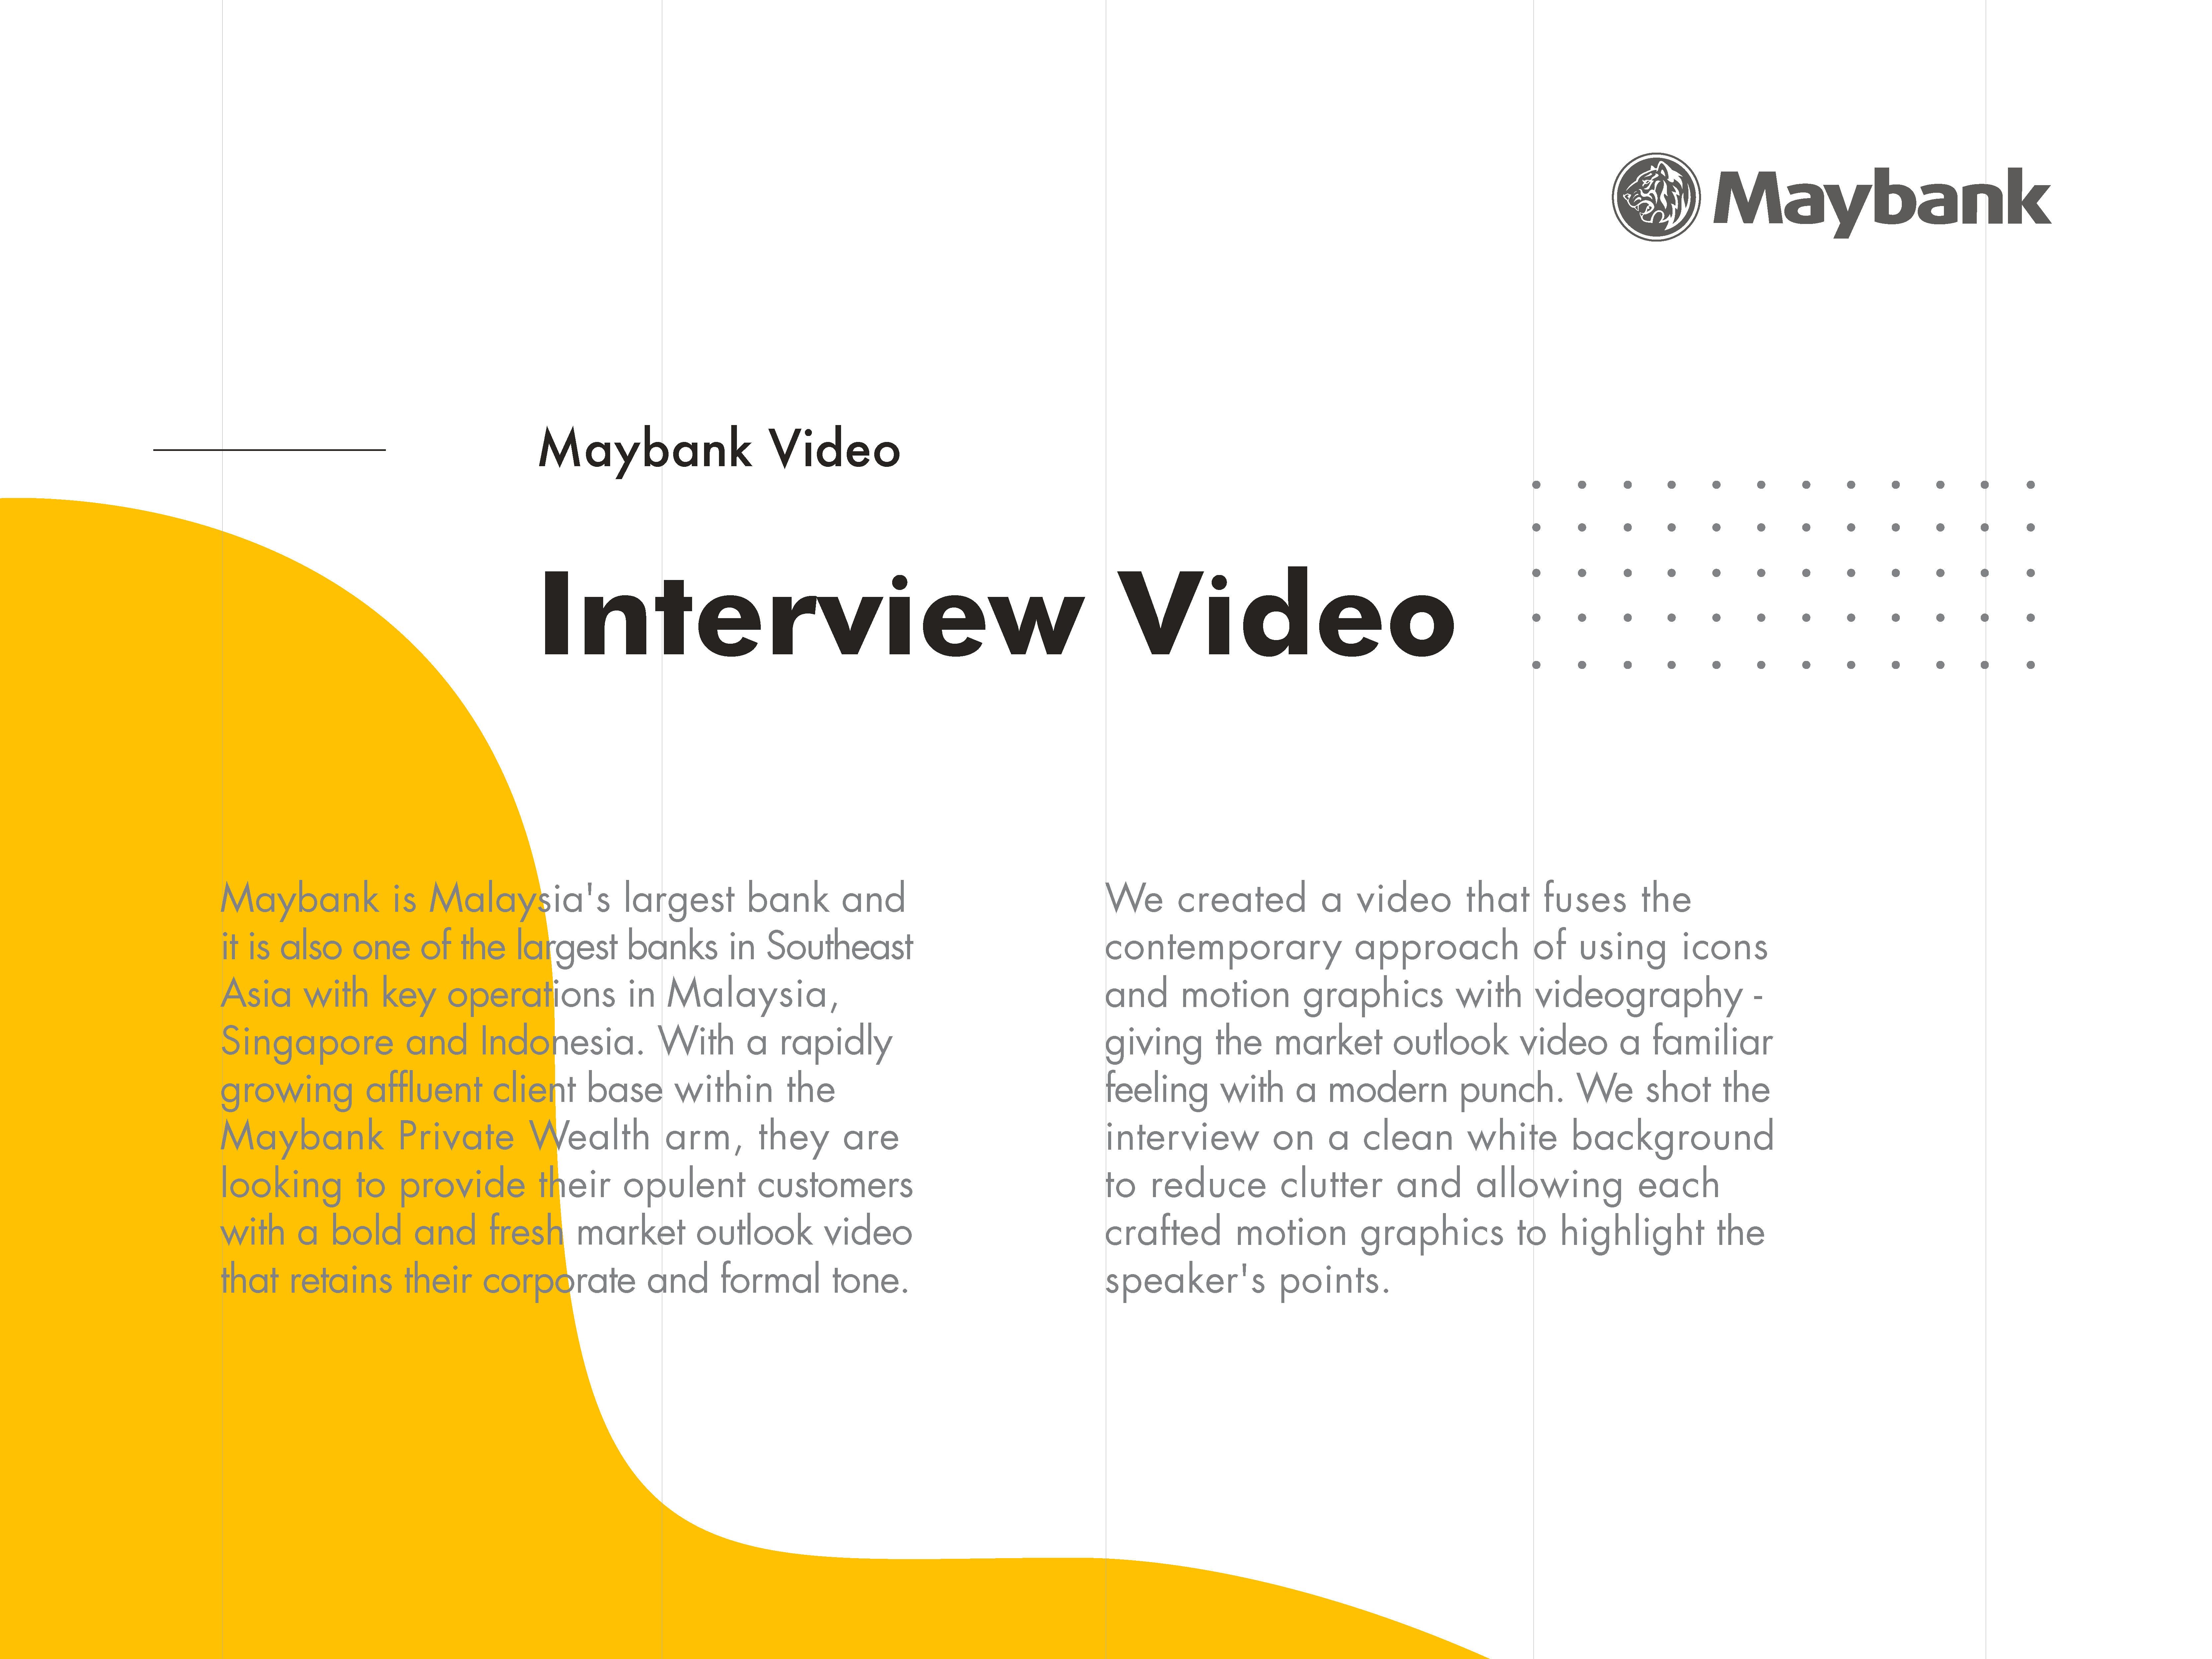 Maybank Premier Wealth market outlook interview video description of what we produced